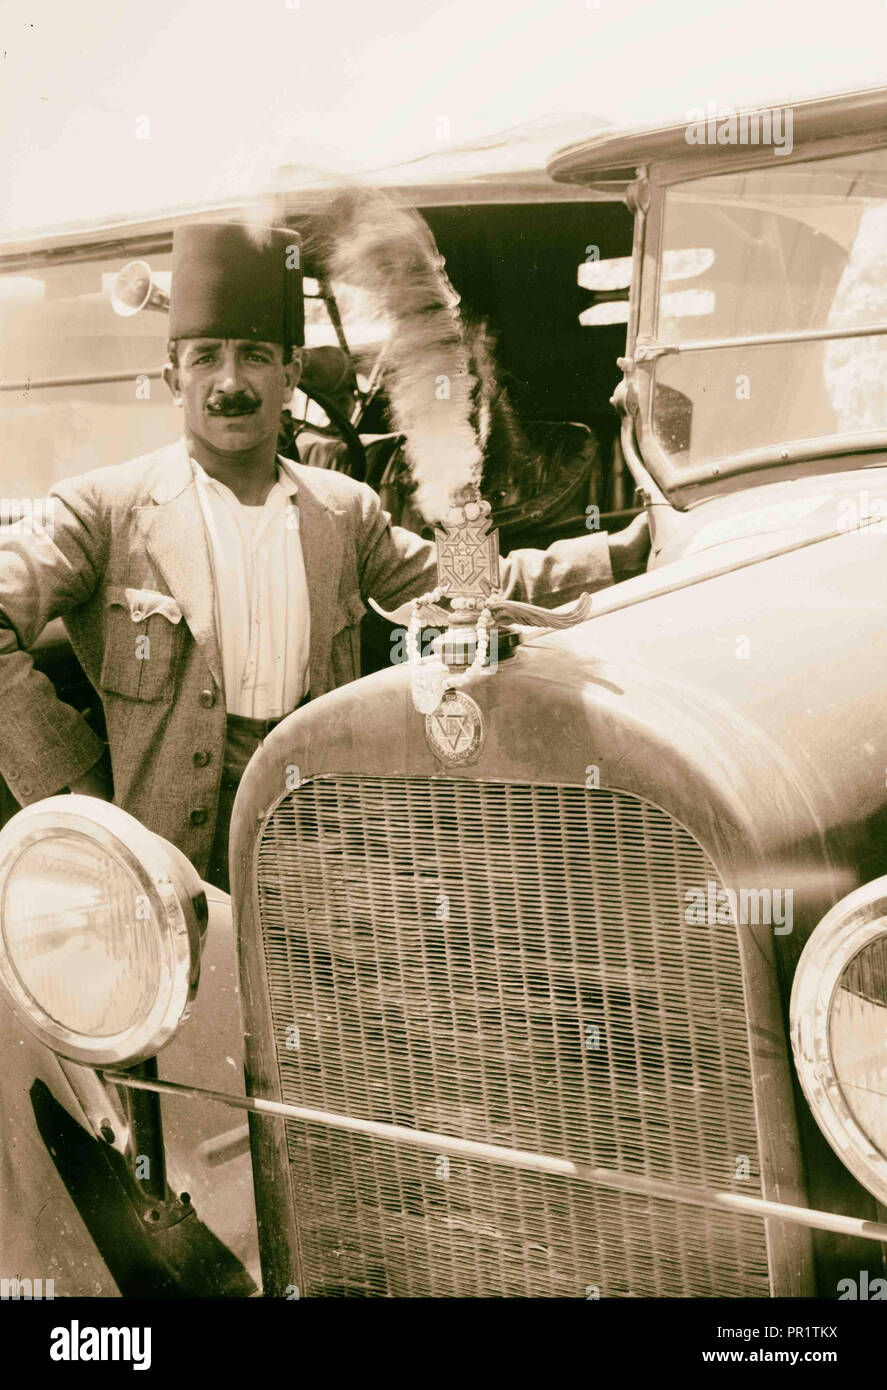 Arab posed beside new Dodge 1920, Middle East, Israel and/or Palestine - Stock Image